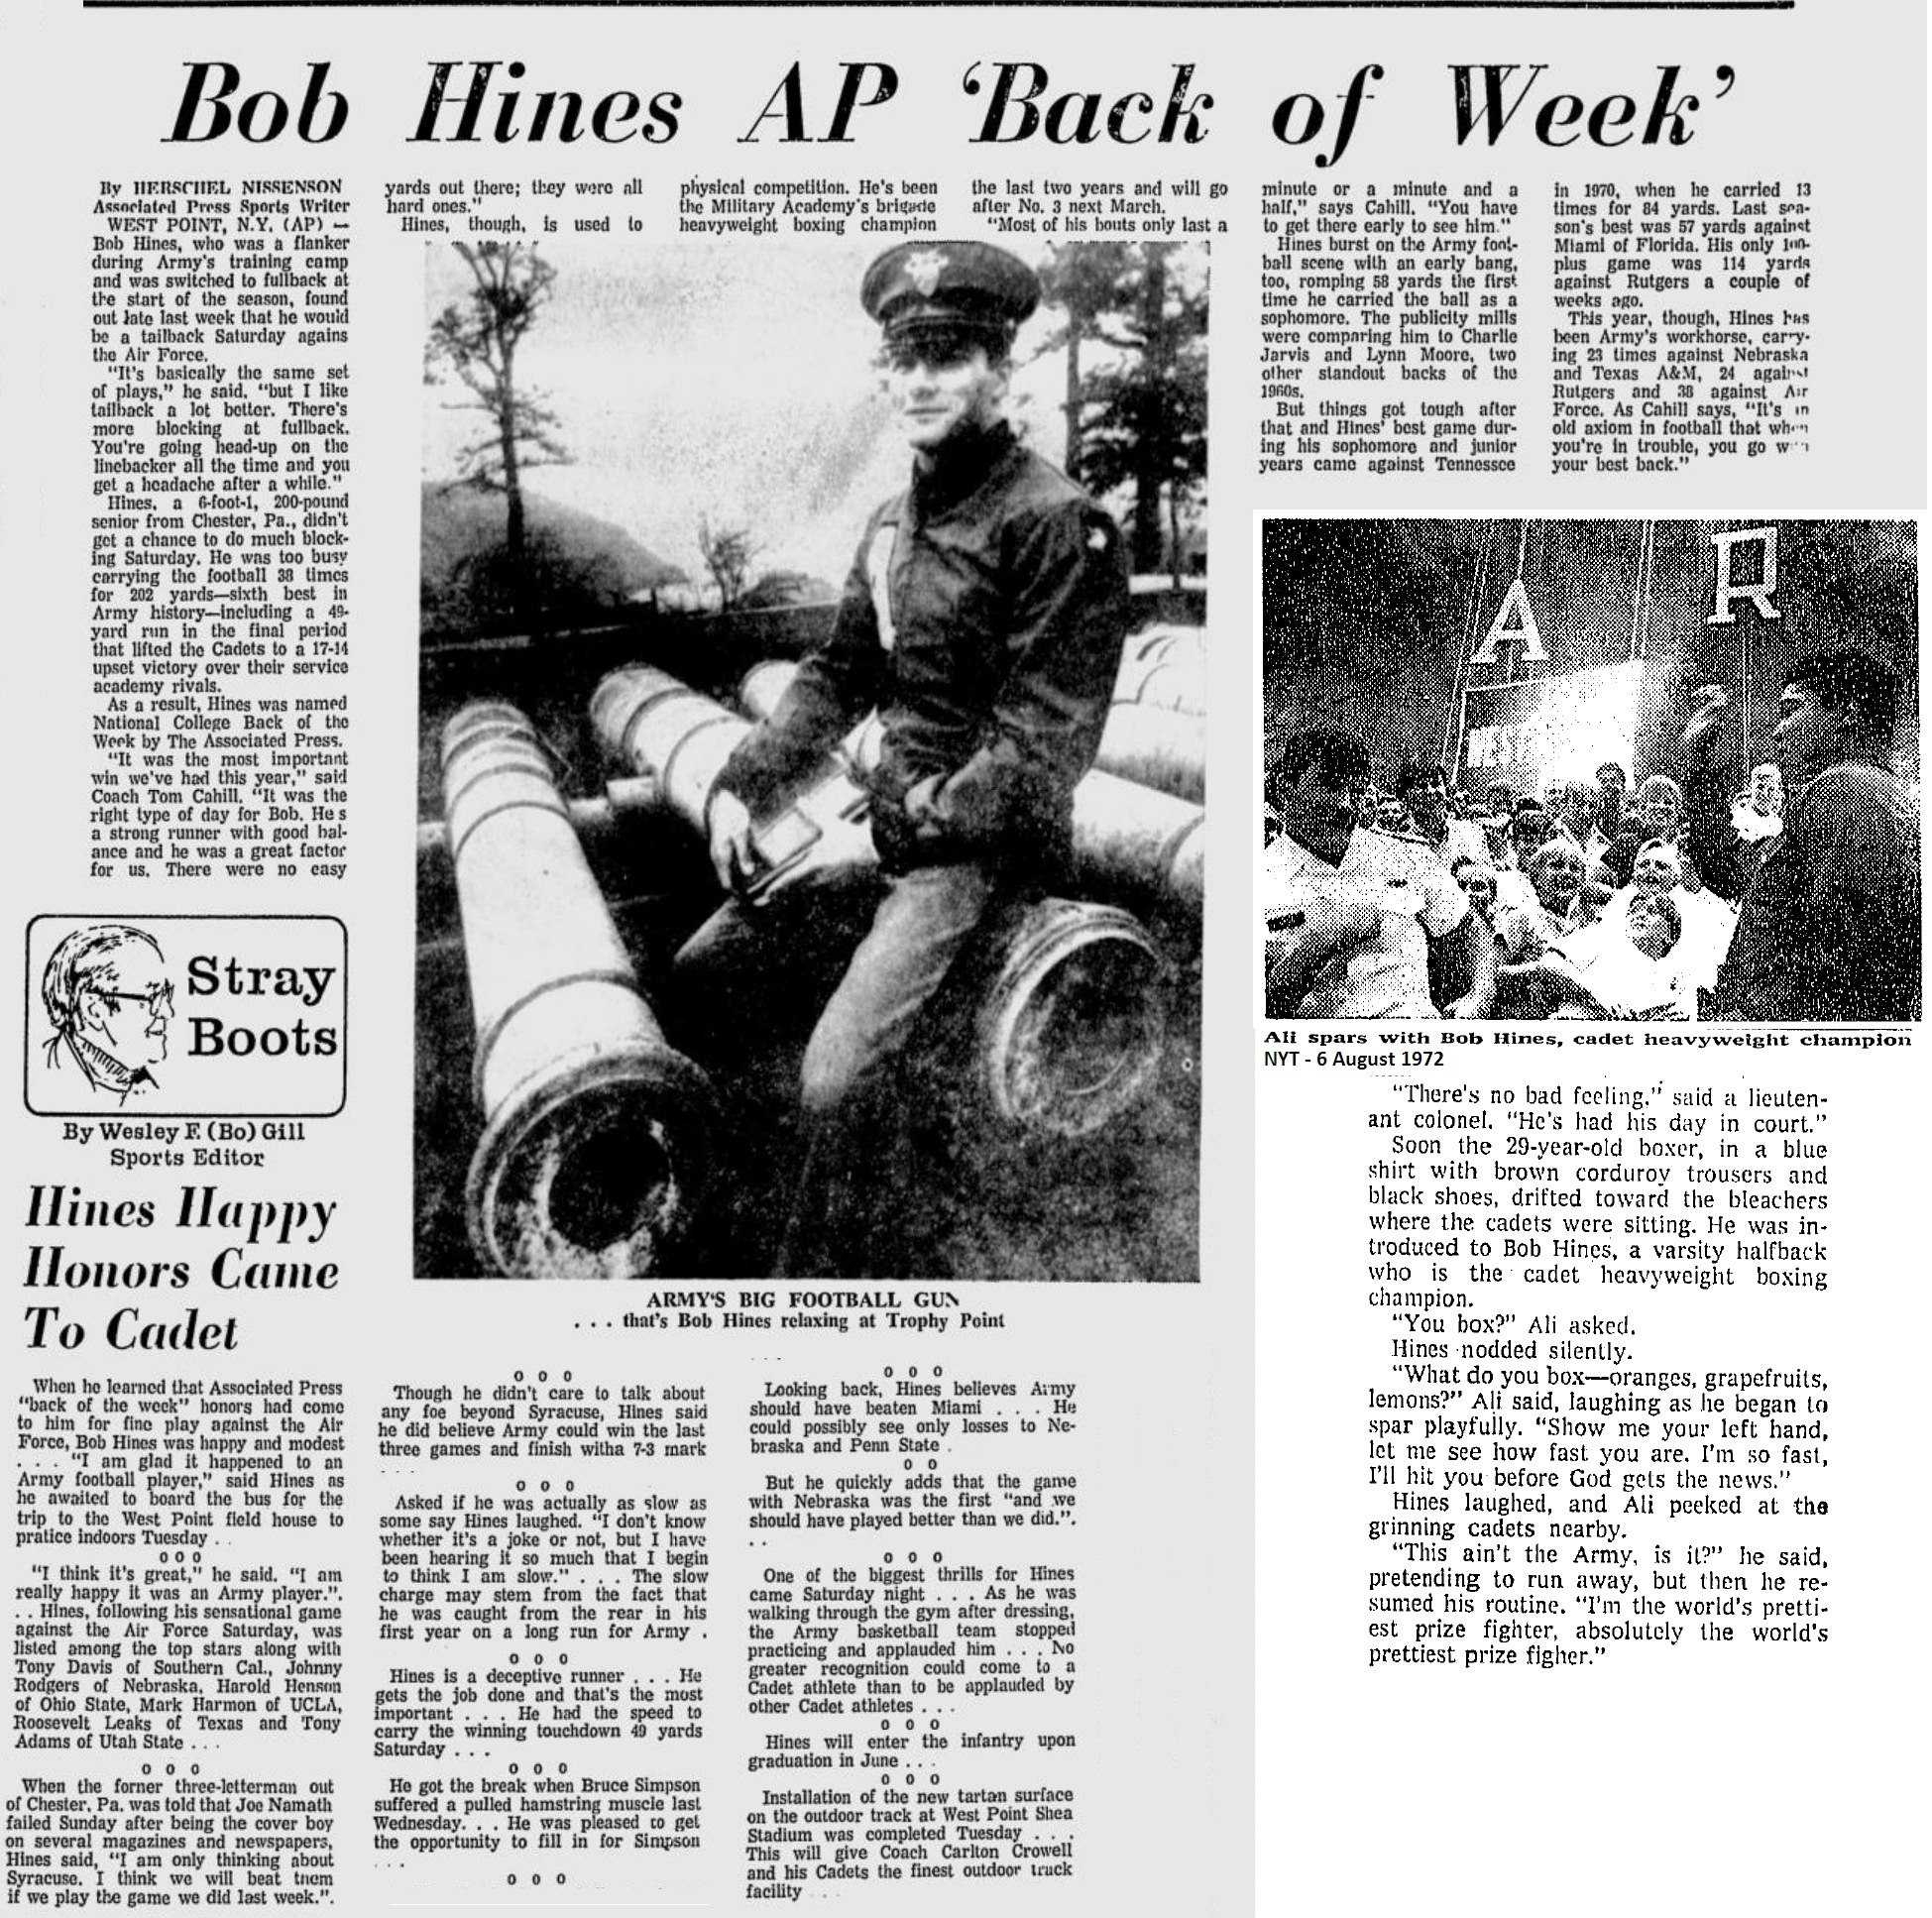 armyfb_1972_vsaf-bobhines-backofweek_eveningnews_nov81972